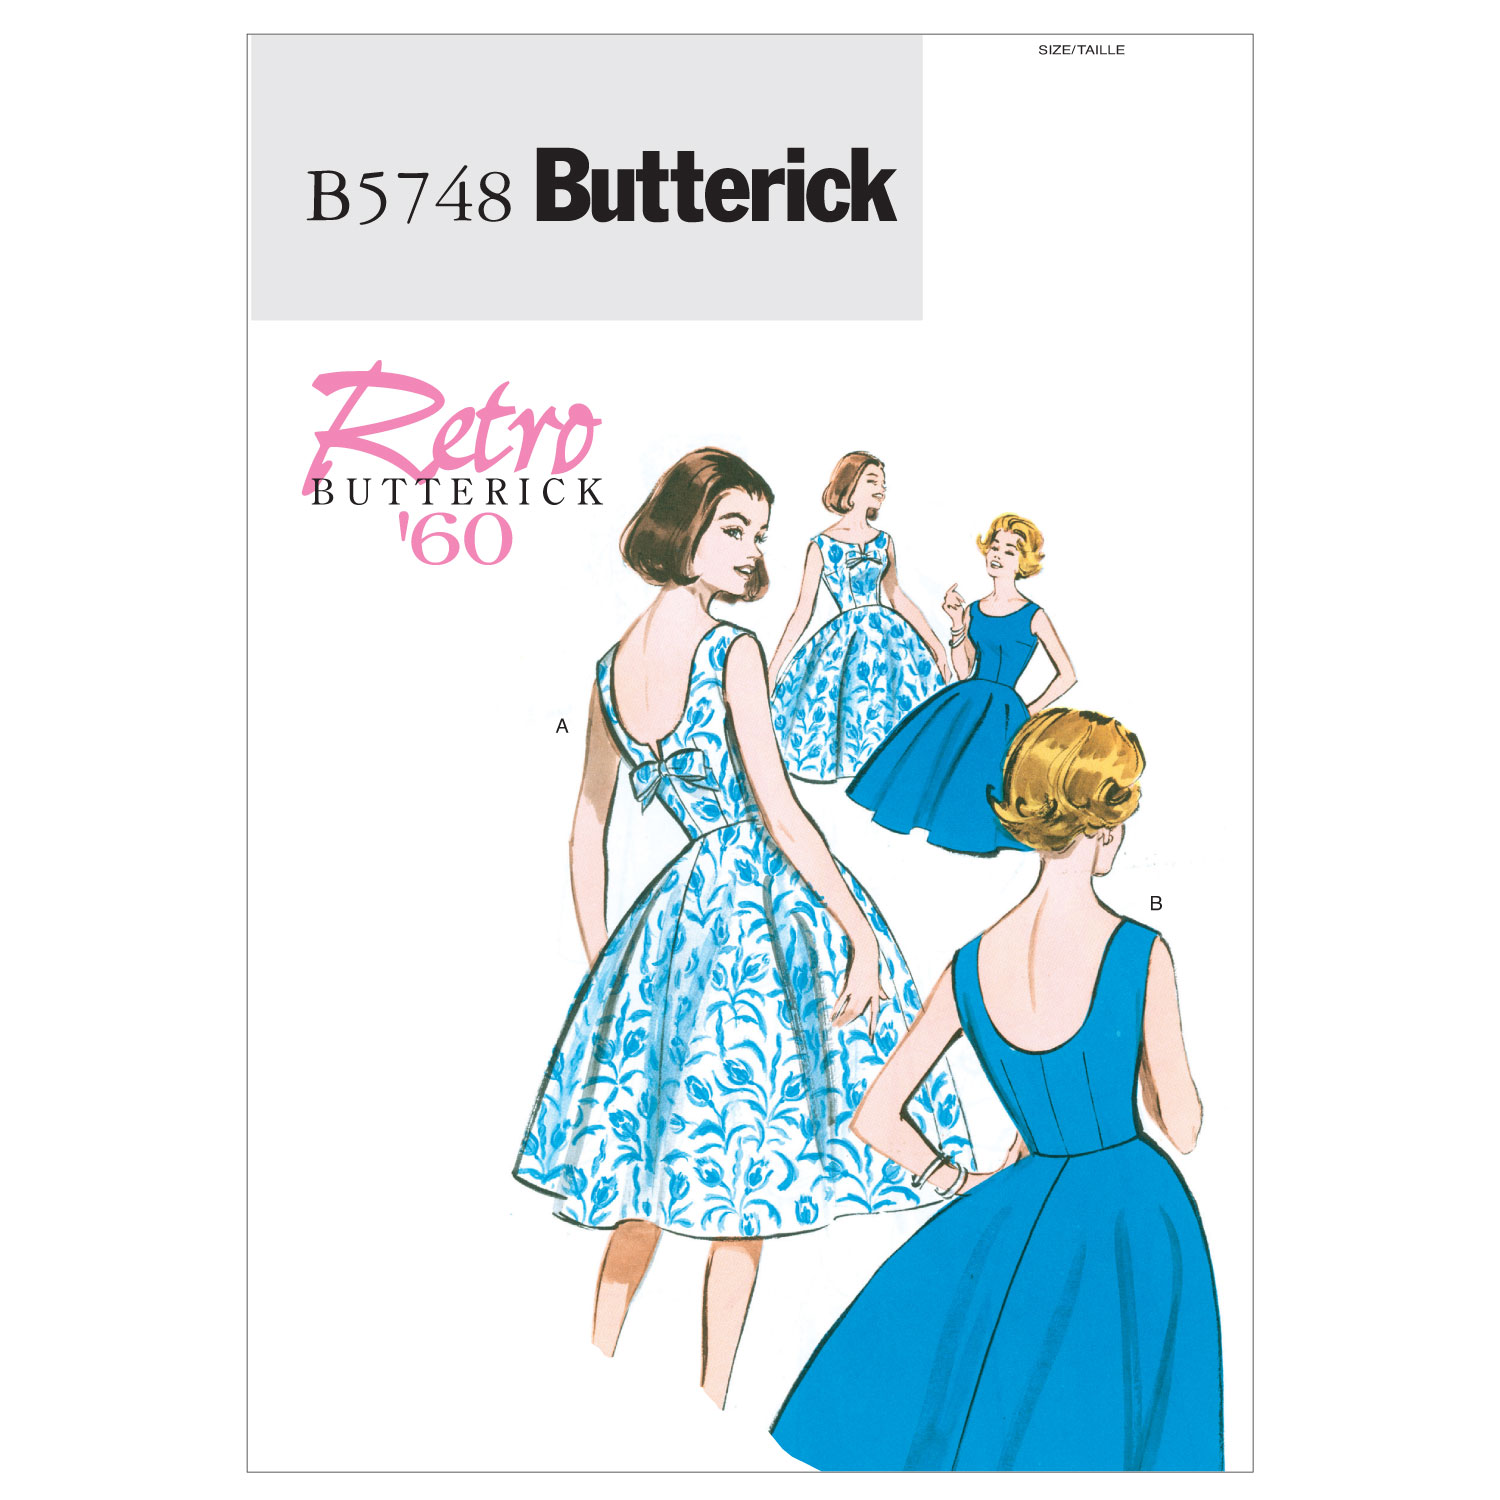 1950s Sewing Patterns | Swing and Wiggle Dresses, Skirts 1960 Butterick MissesMisses Petite Dress Pattern B5748 Size A50 $14.98 AT vintagedancer.com